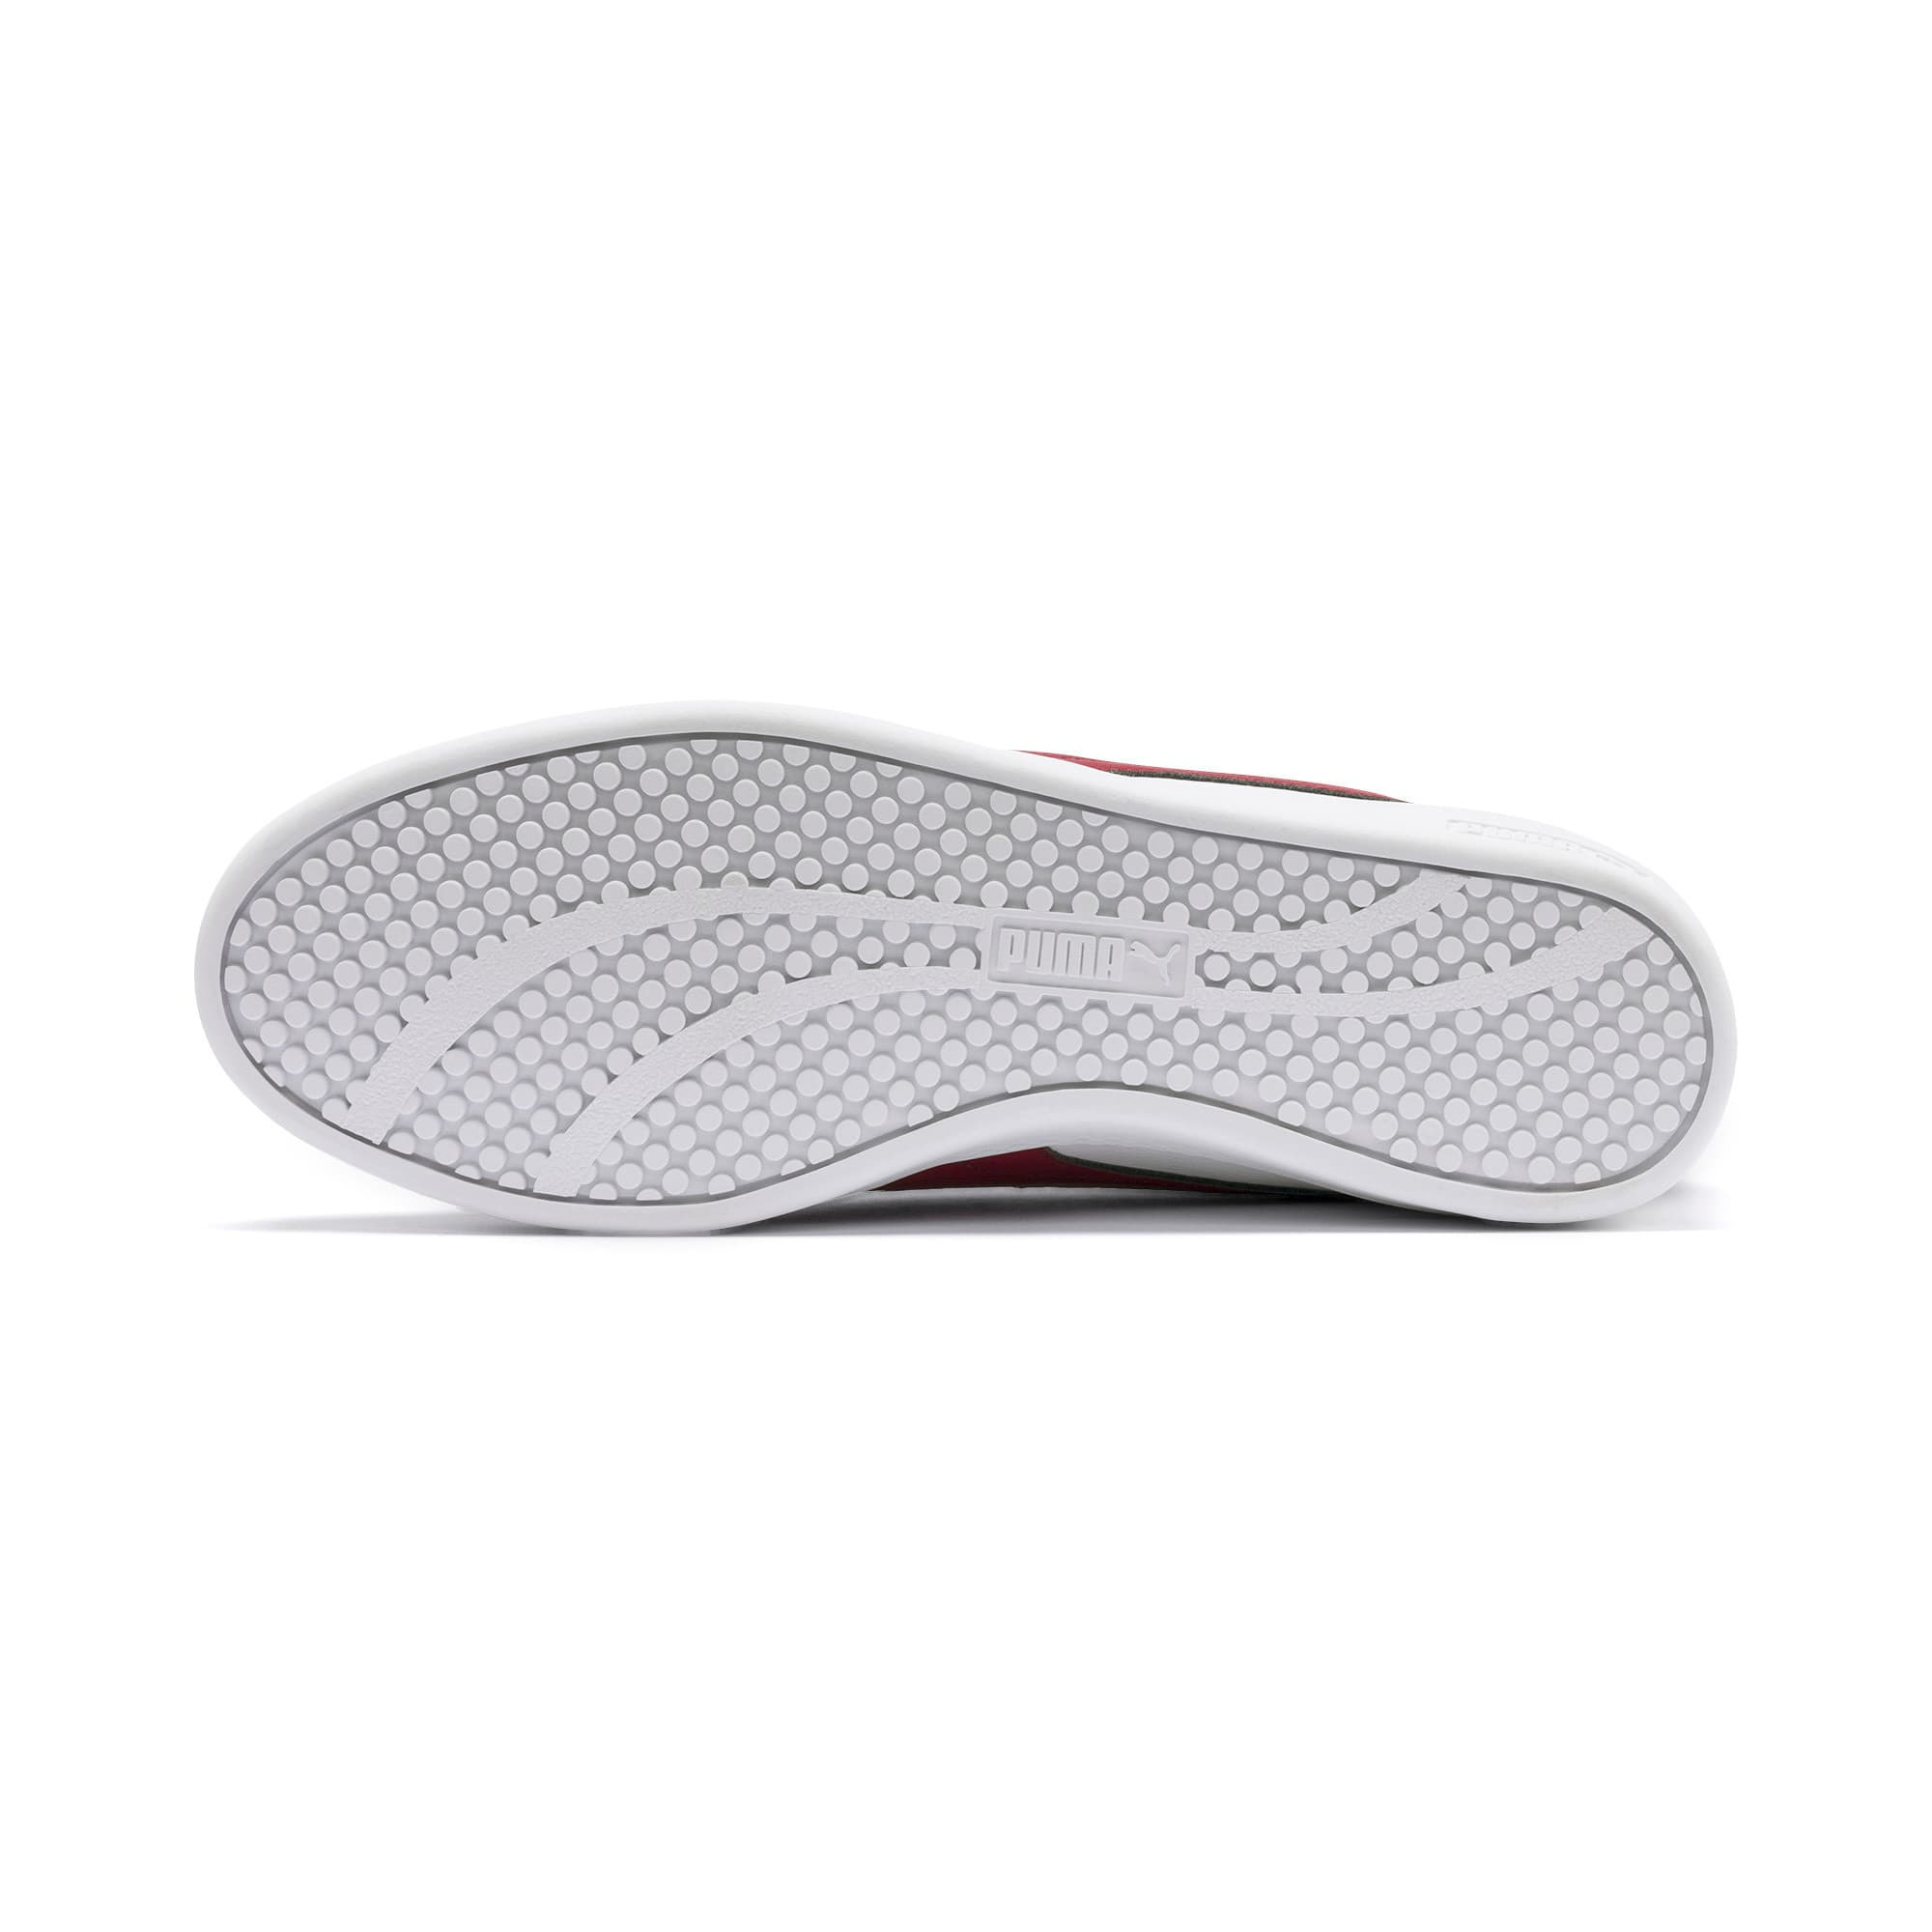 Thumbnail 5 of Basket en cuir Smash v2 pour femme, Puma White-Rhubarb, medium